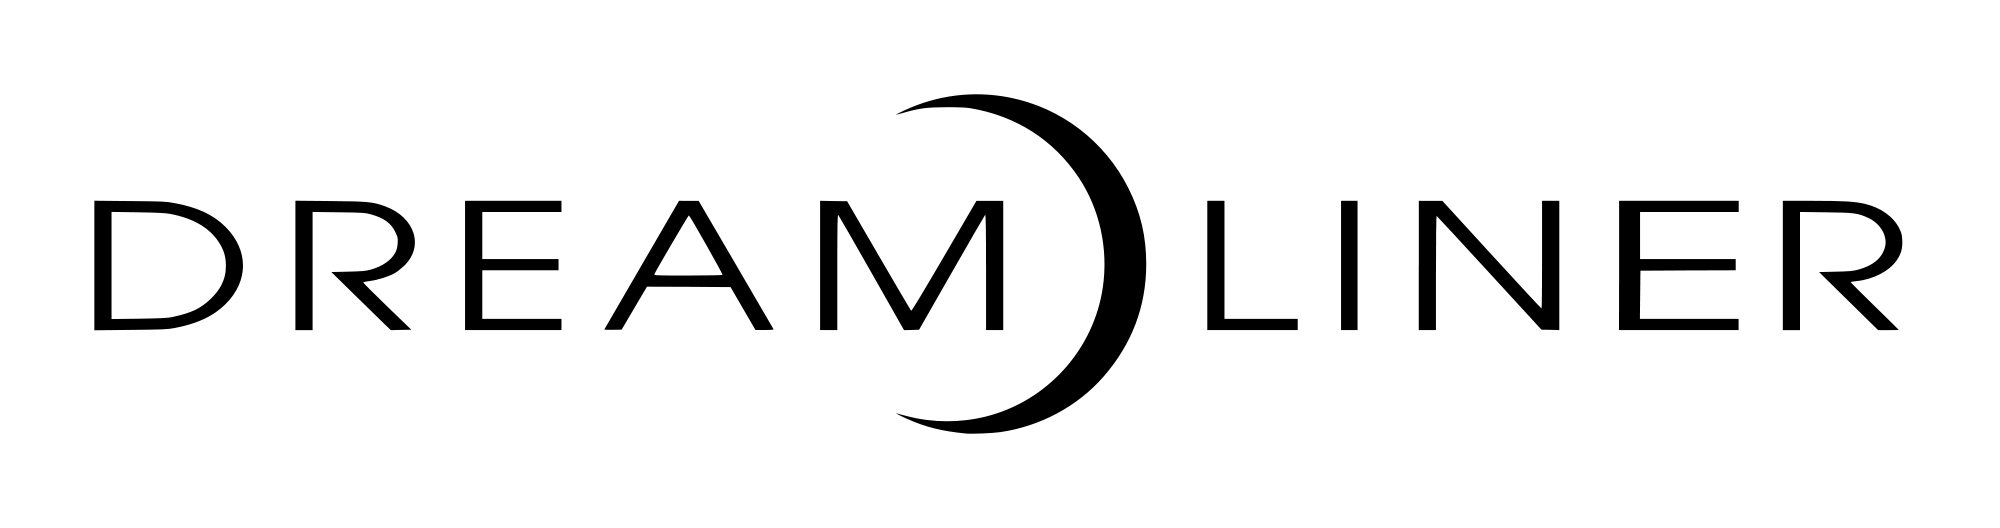 Open Hdpng.com  - Boeing Vector, Transparent background PNG HD thumbnail